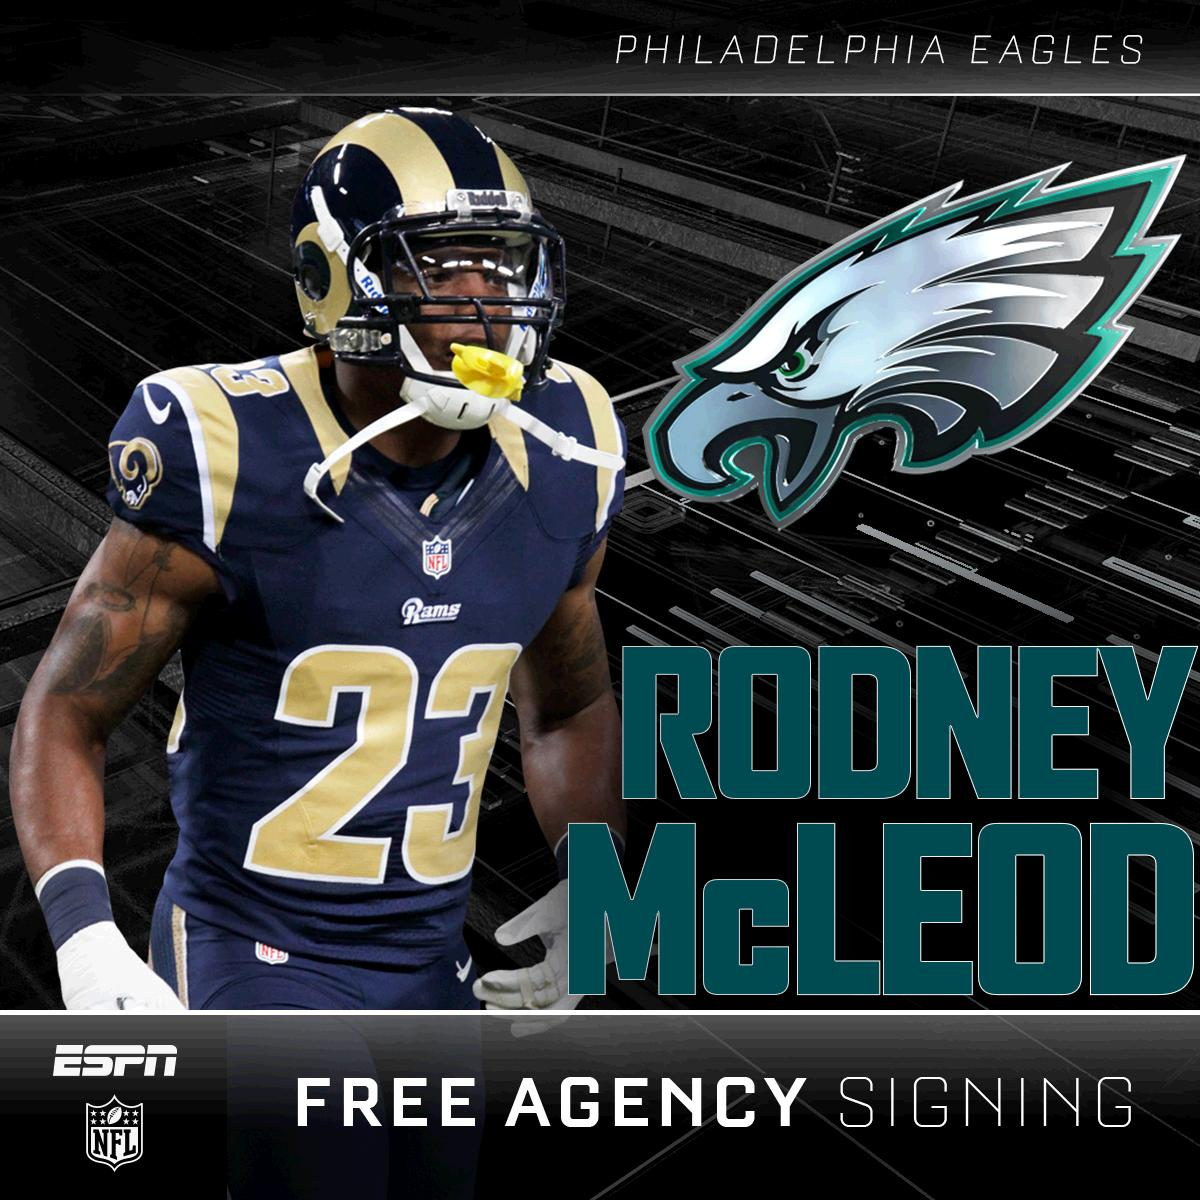 Rodney mcleod will go to the eagles on a 5 year $37 million deal